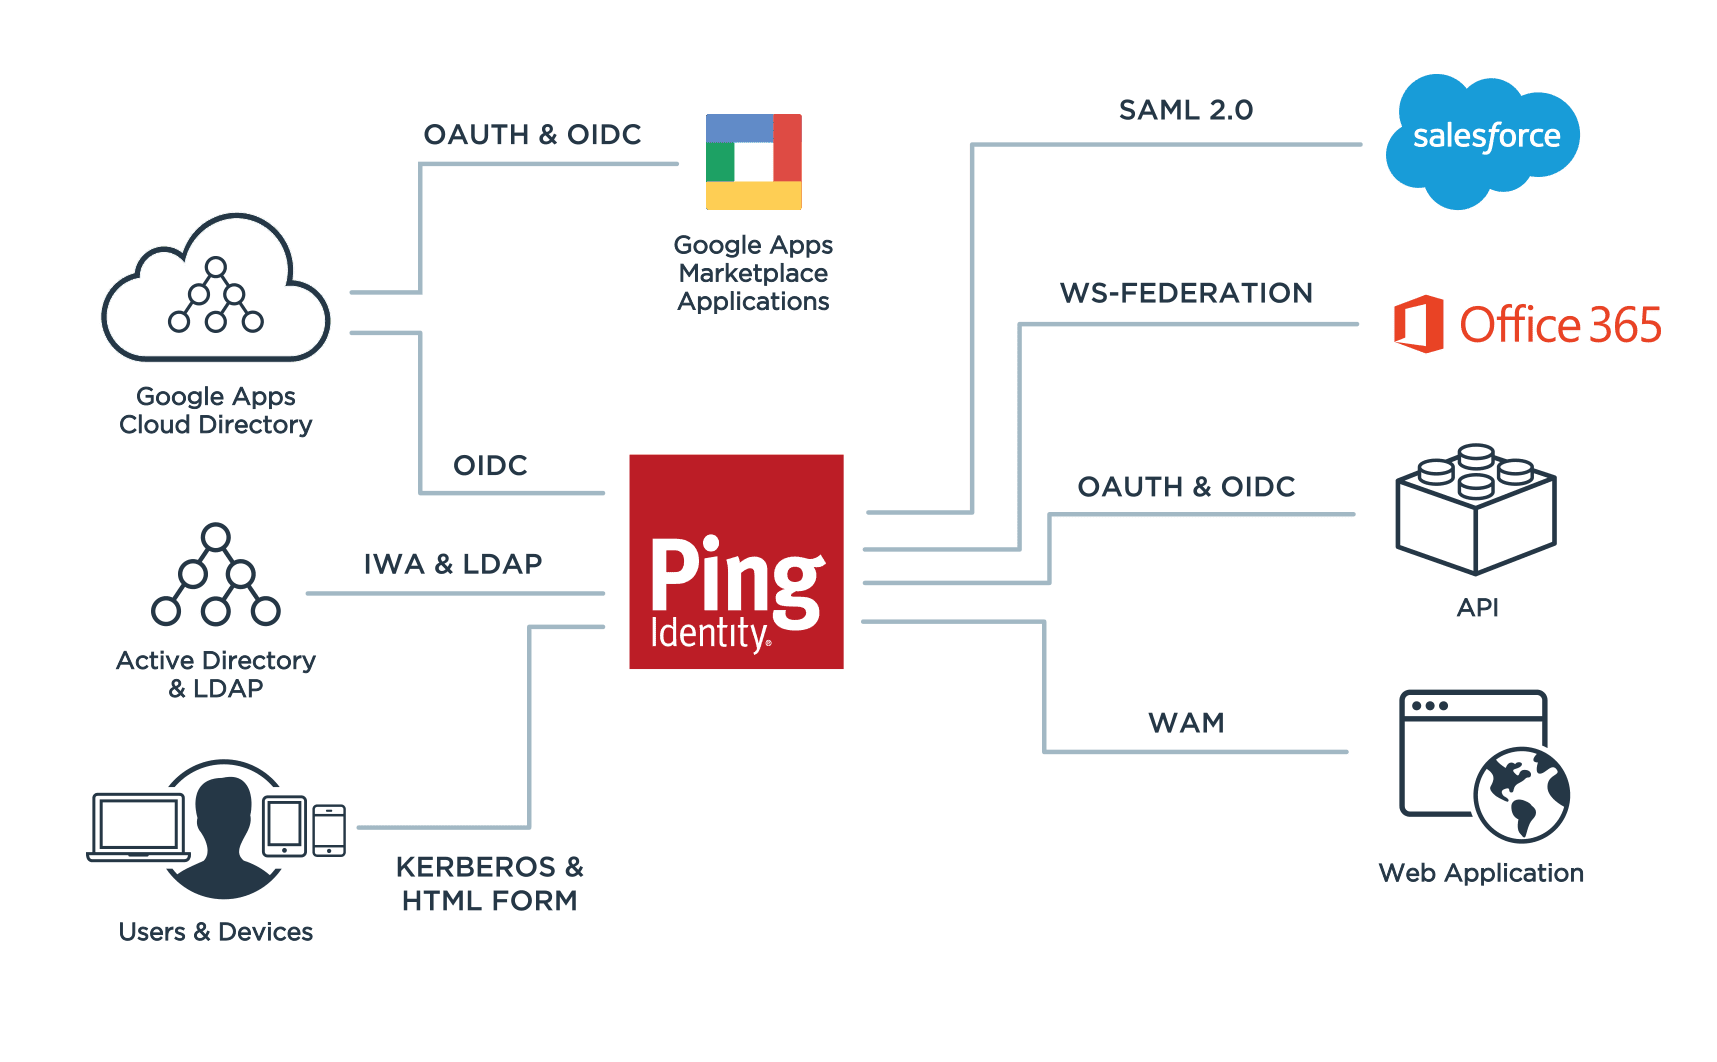 Demonstrates how Ping Identity provides several different APIs so that you can customize the product to suit all your SaaS, web, mobile and legacy apps.